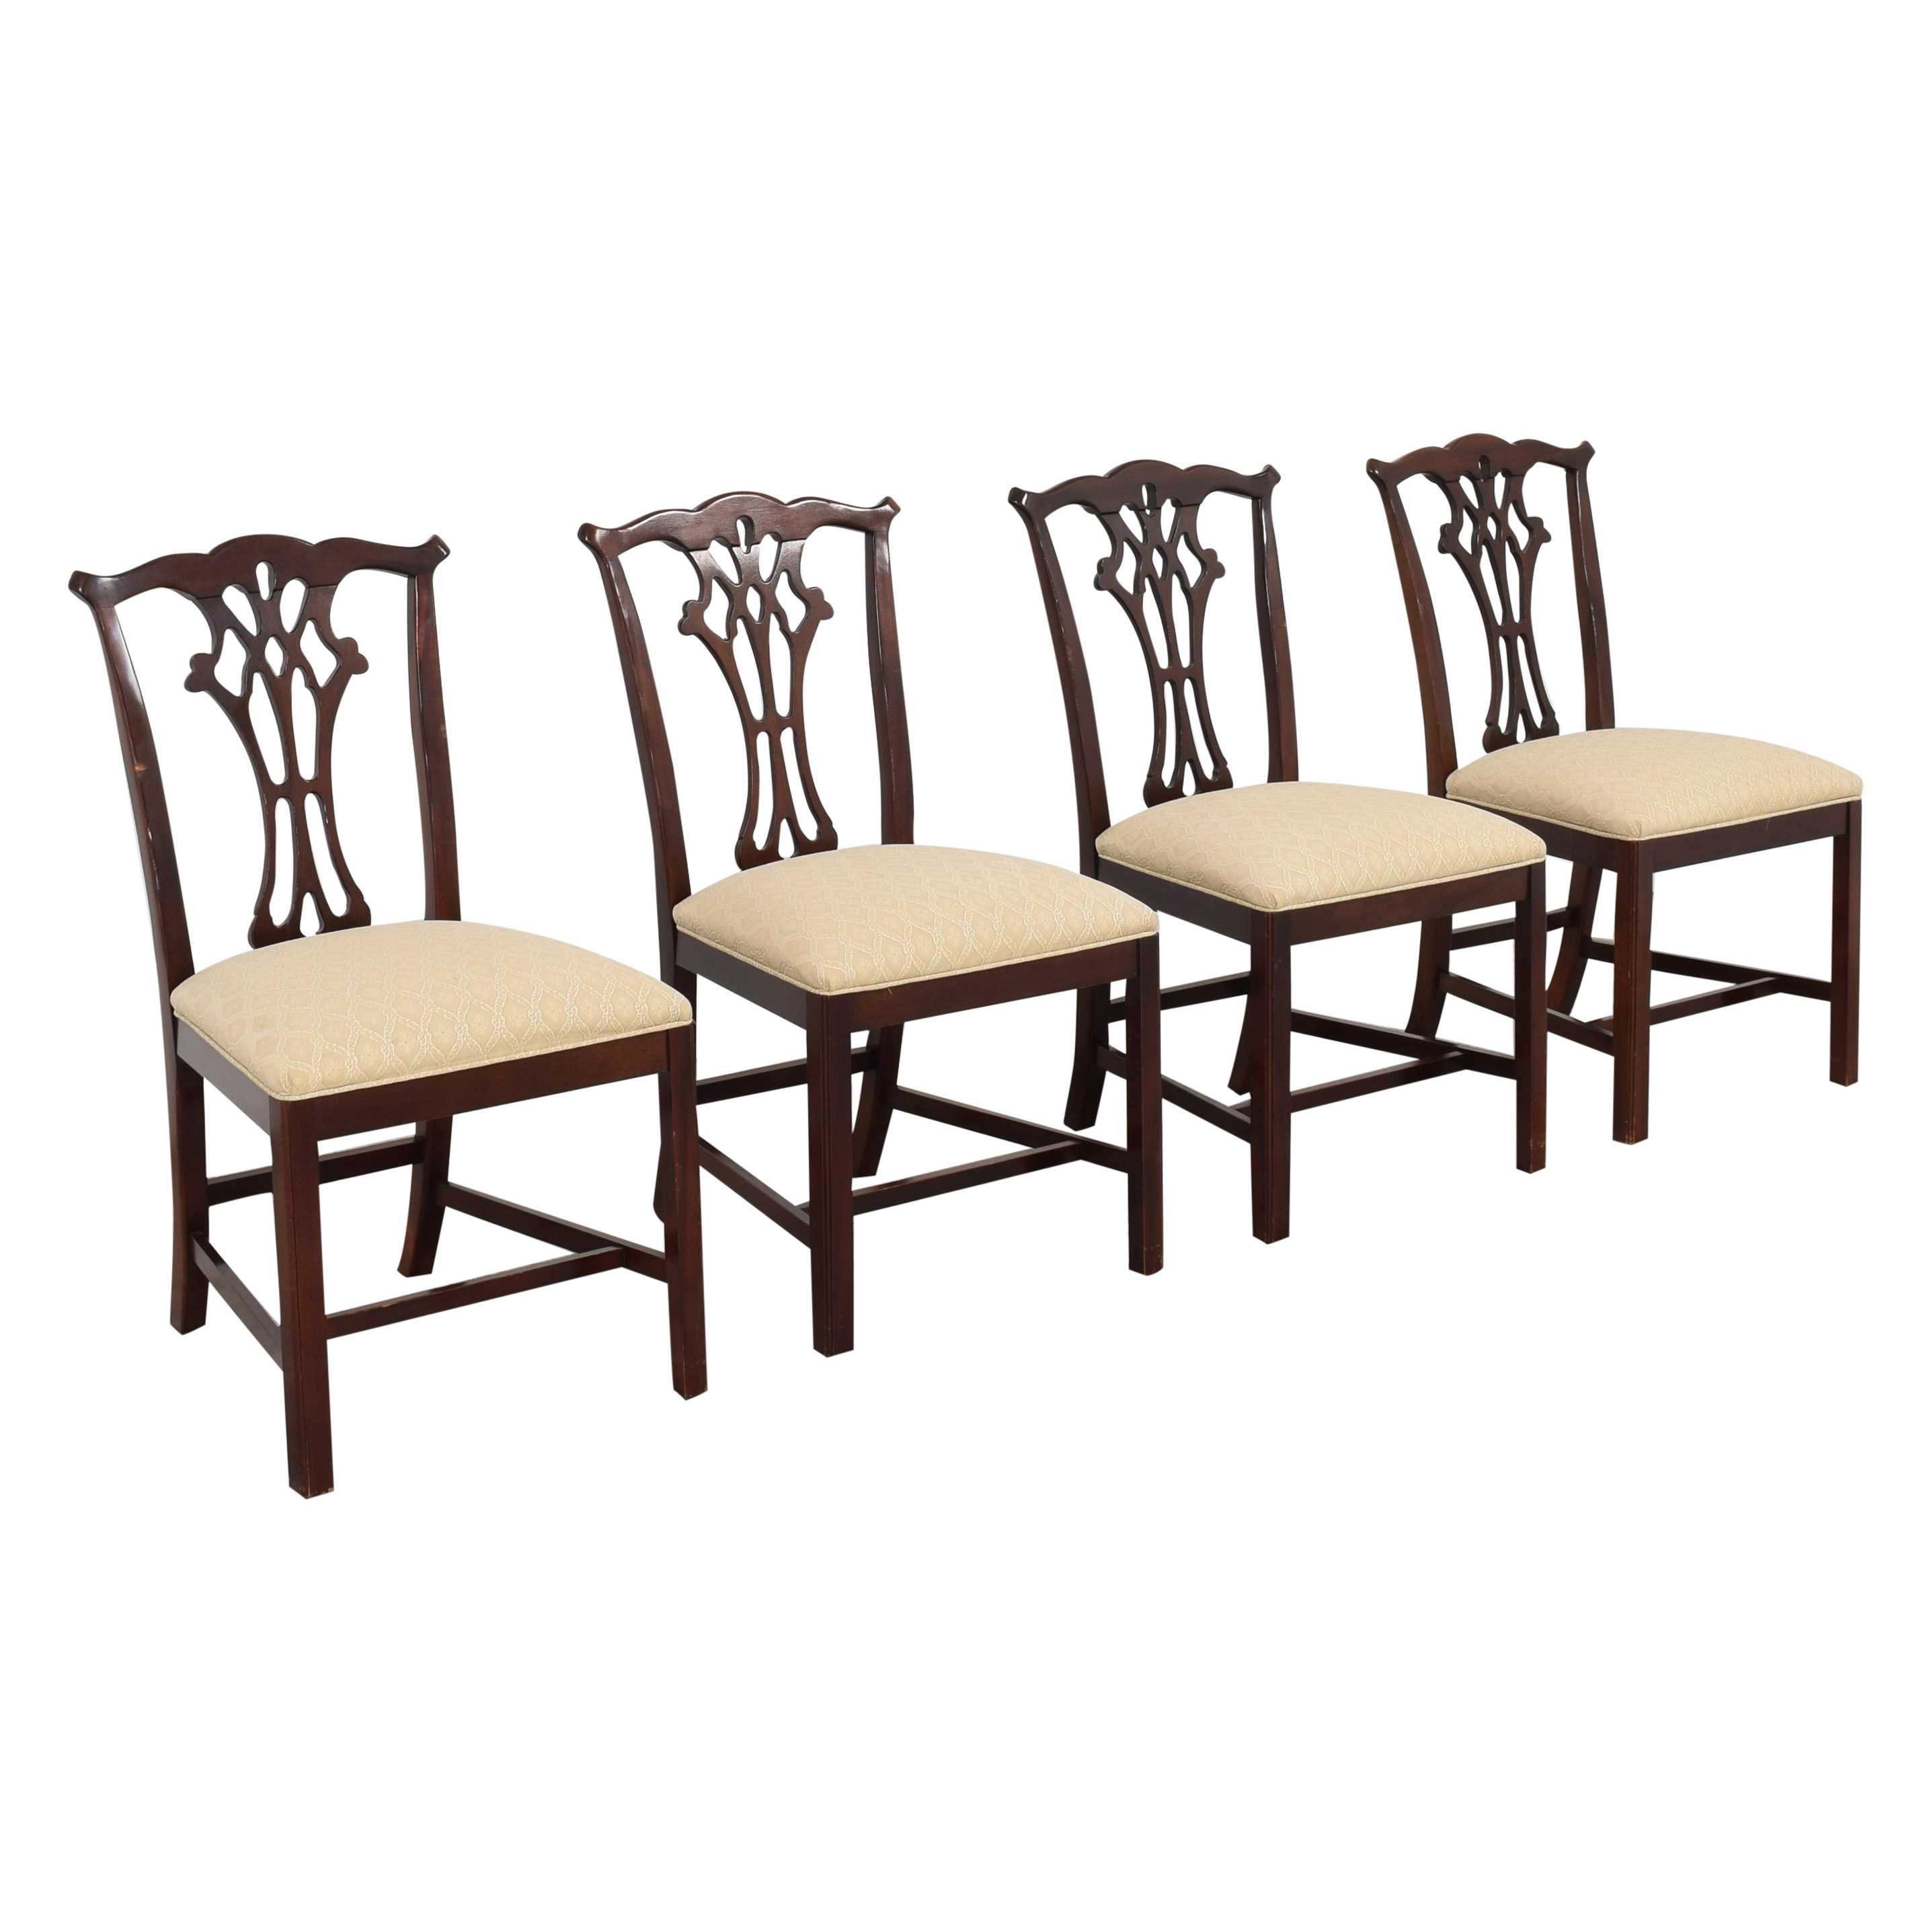 buy Hickory White Chippendale Dining Chairs Hickory White Chairs